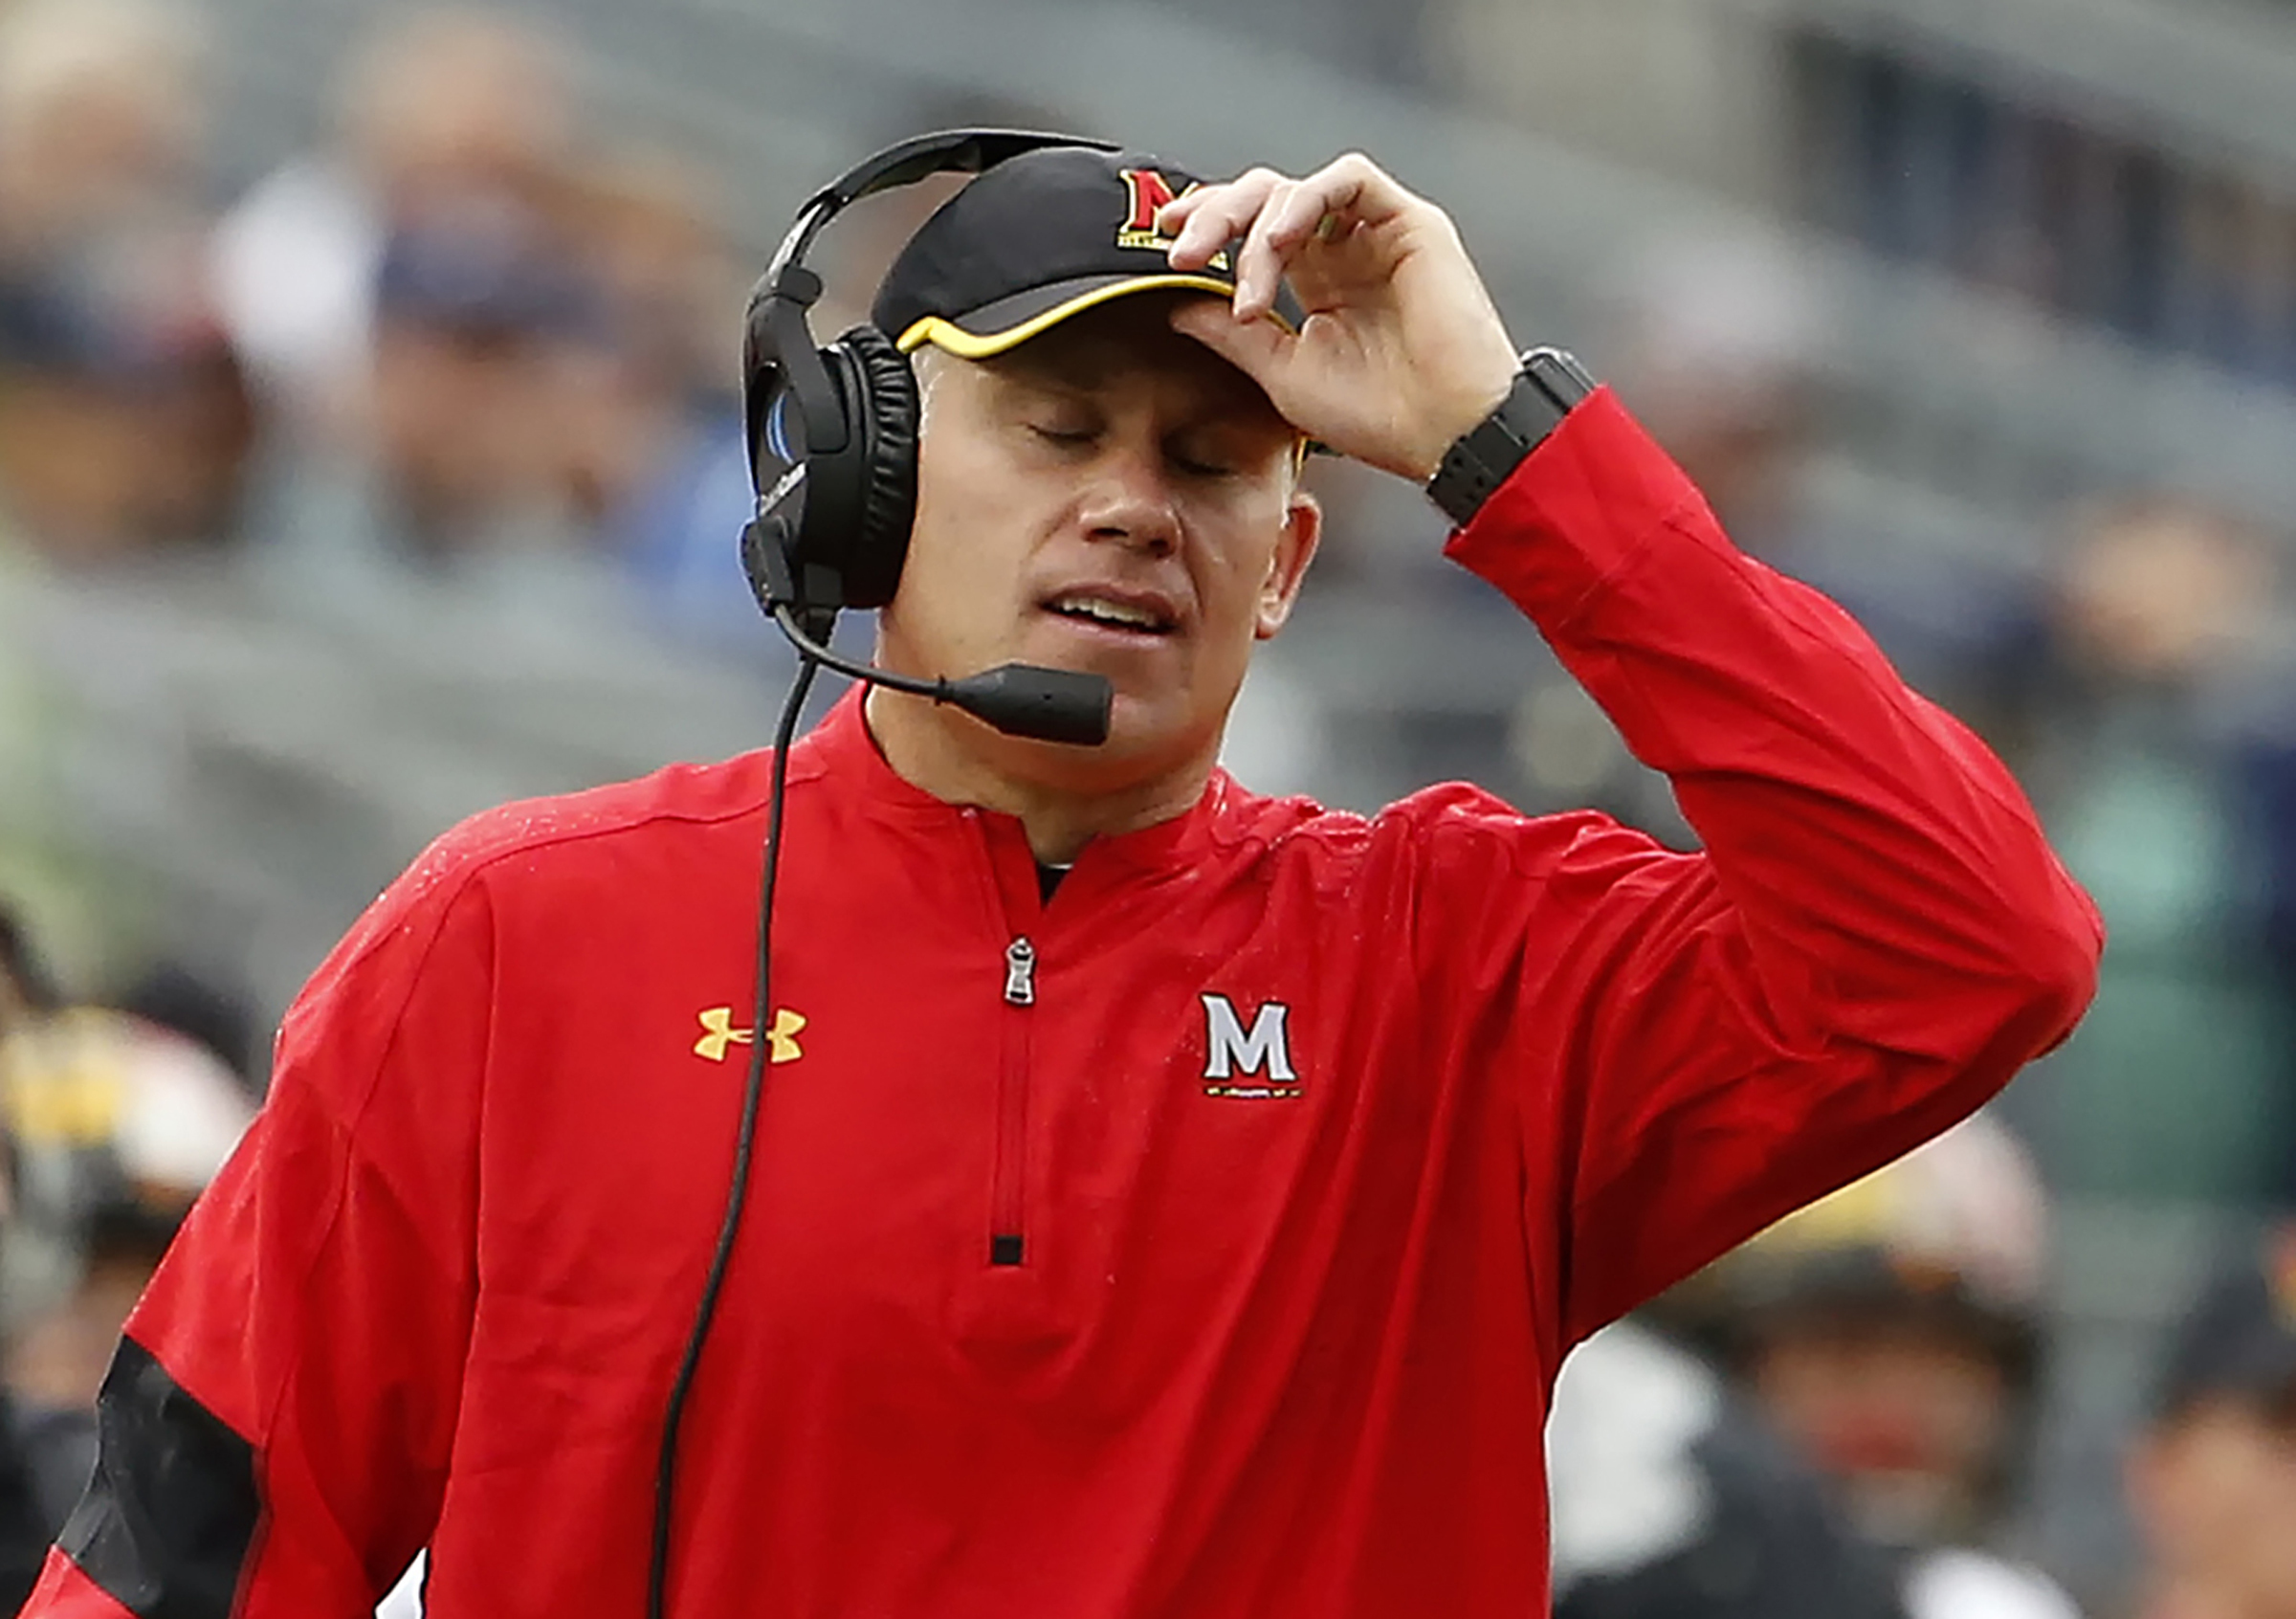 FILE - In this Oct. 8, 2016, file photo, Maryland head coach DJ Durkin reacts after Penn State scores during the second half of an NCAA college football game in State College, Pa. Maryland's offense has sputtered the last two games, and the cure might go